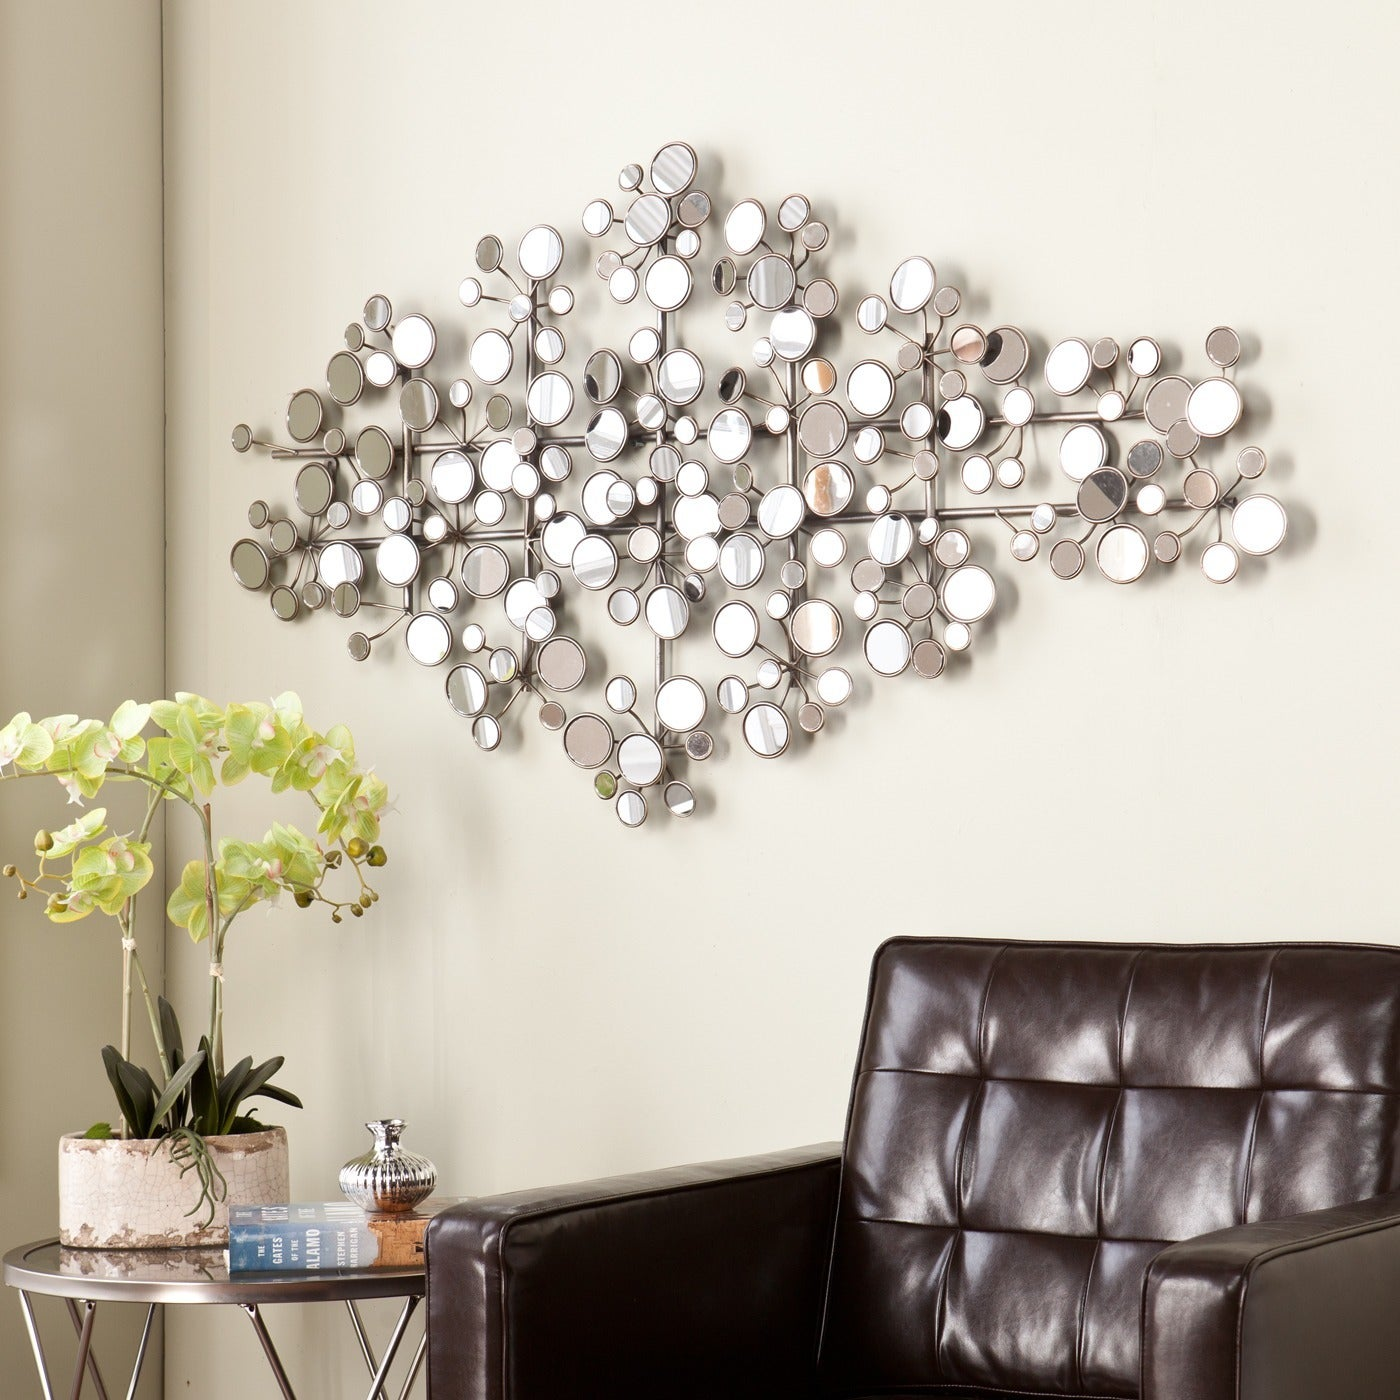 Wall Sculptures For Living Room | Wall Plate Design Ideas